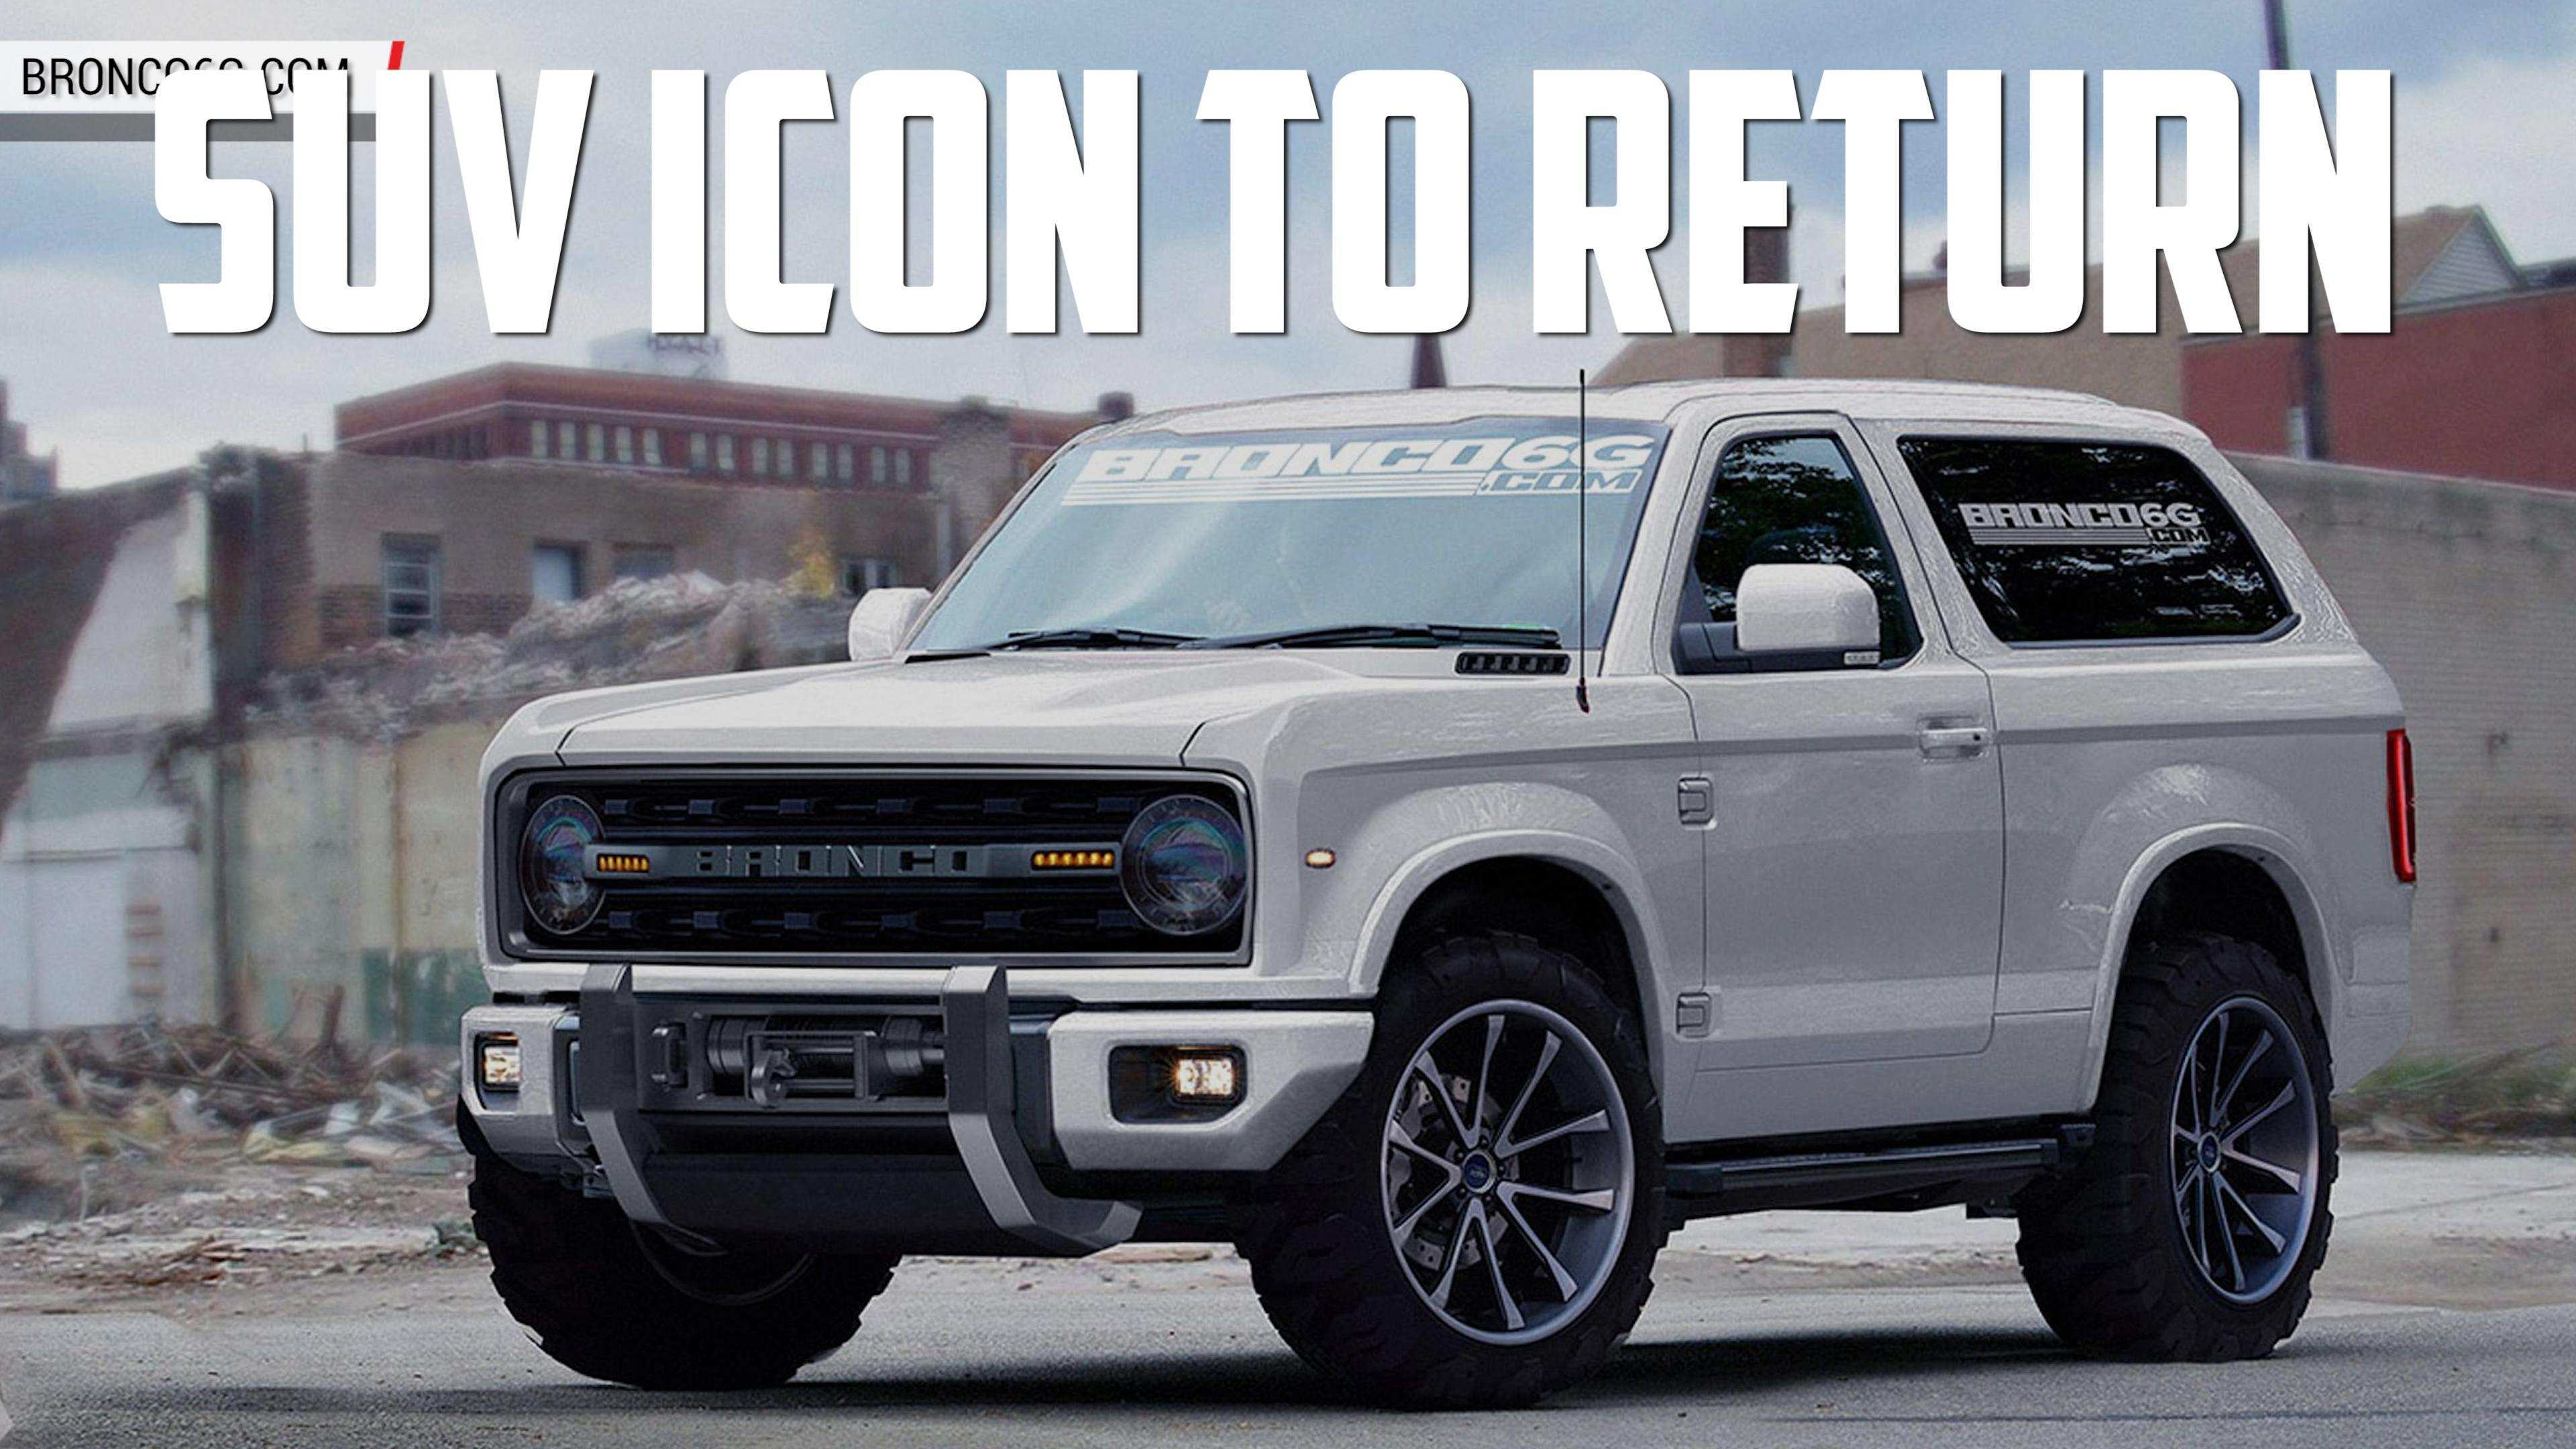 83 A 2020 Ford Bronco Latest News Performance